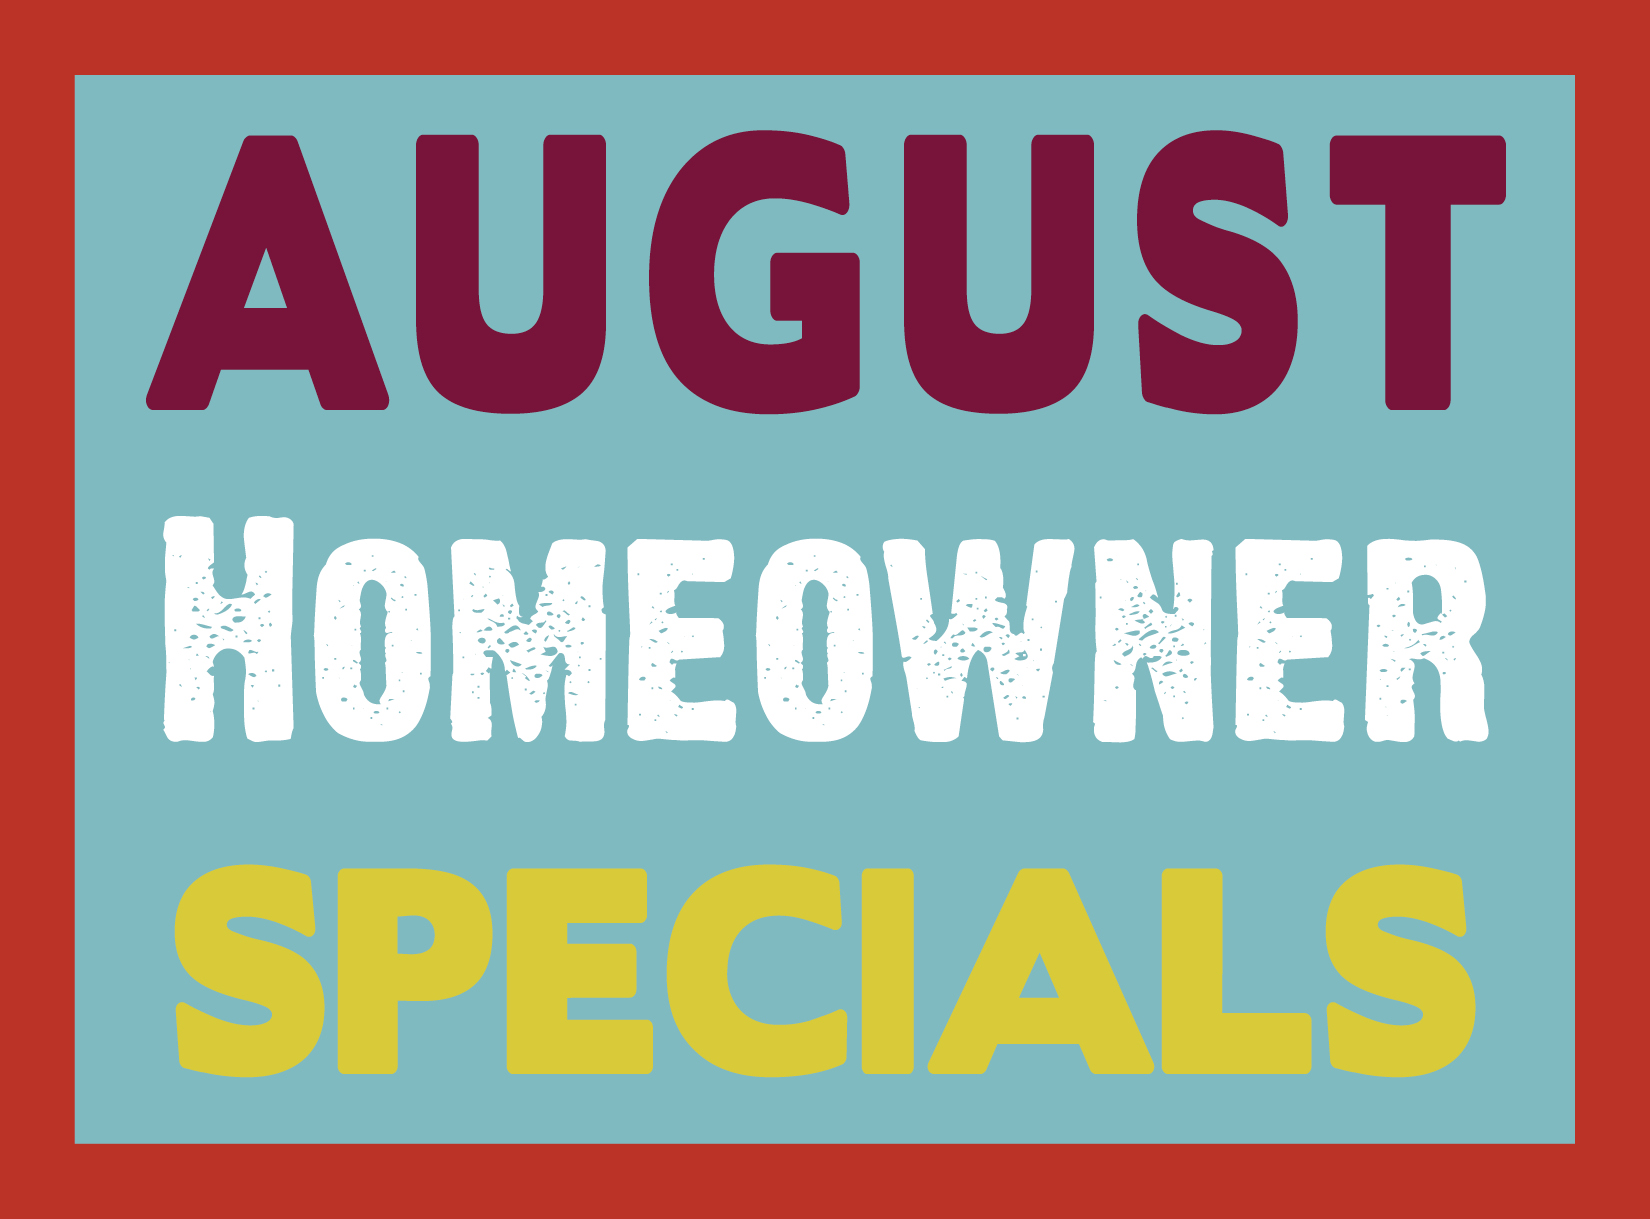 August Homeowner Specials